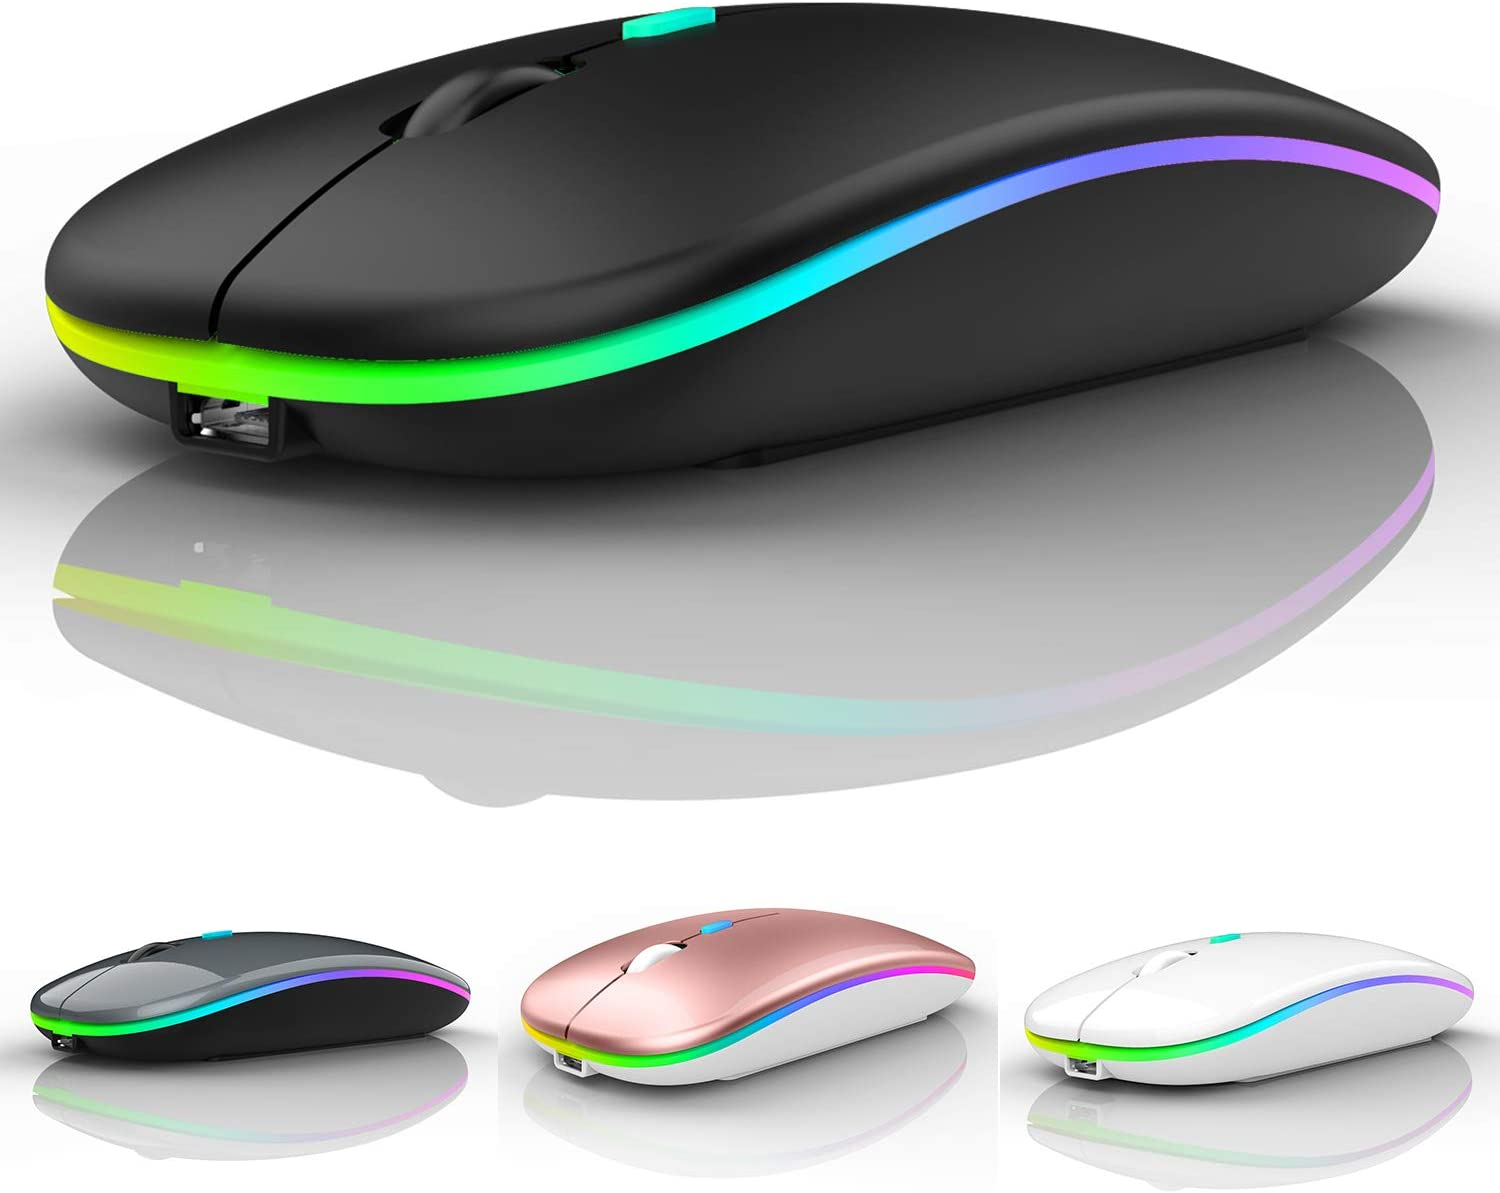 Bluetooth Mouse for ipad,Bluetooth Mouse for MacBook Air/Mac/MacBook Pro/Mini/ipad Pro/iMac/Laptop,Rechargeable Wireless Mouse for MacBook Air/MacBook pro Chromebook Laptop PC (Black)